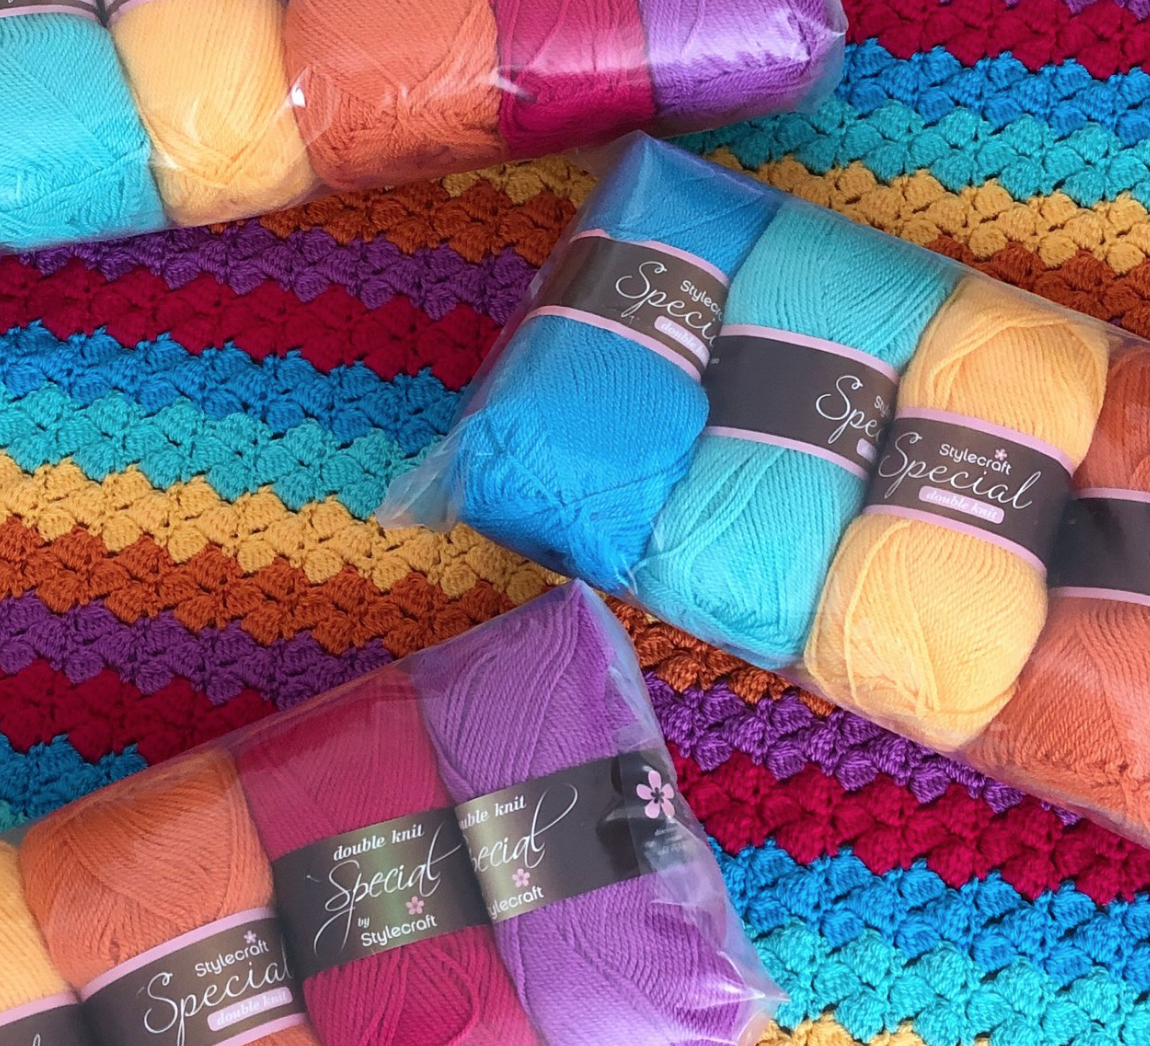 Bright Blanket - Crochet kits ready for Spring Into Wool